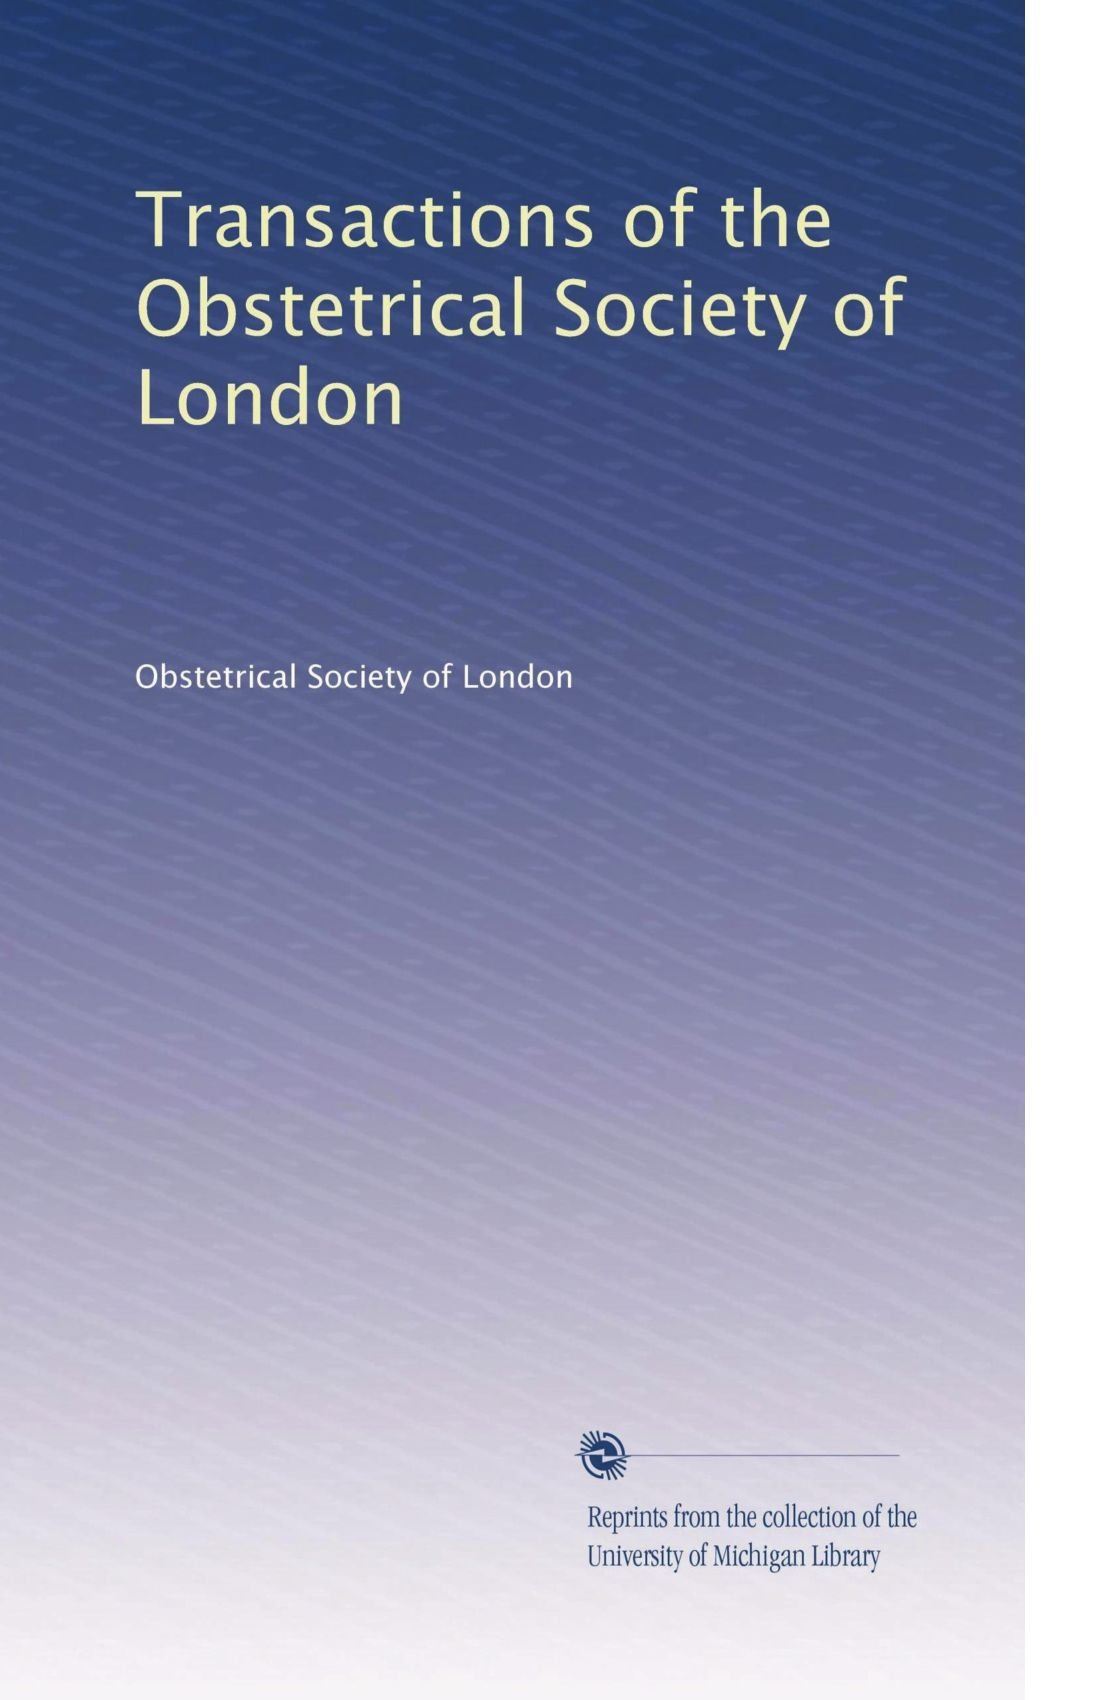 Transactions of the Obstetrical Society of London (Volume 6) pdf